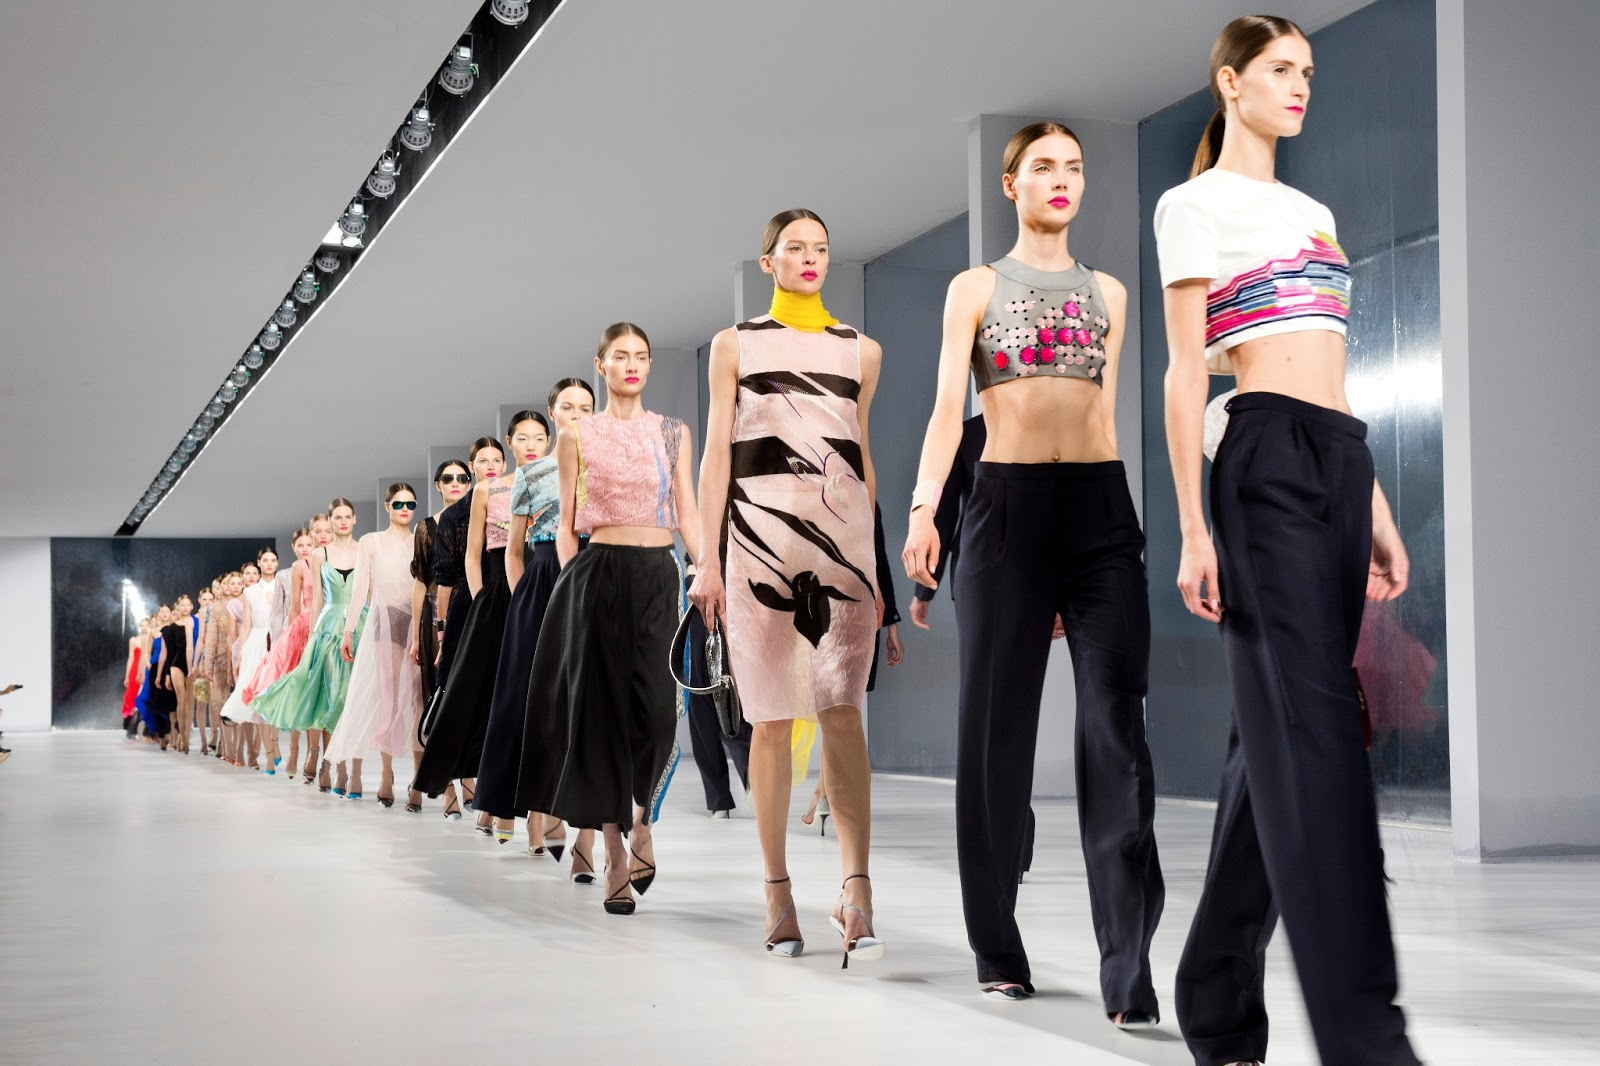 Espectacular el primer desfile de Dior Cruise Collection